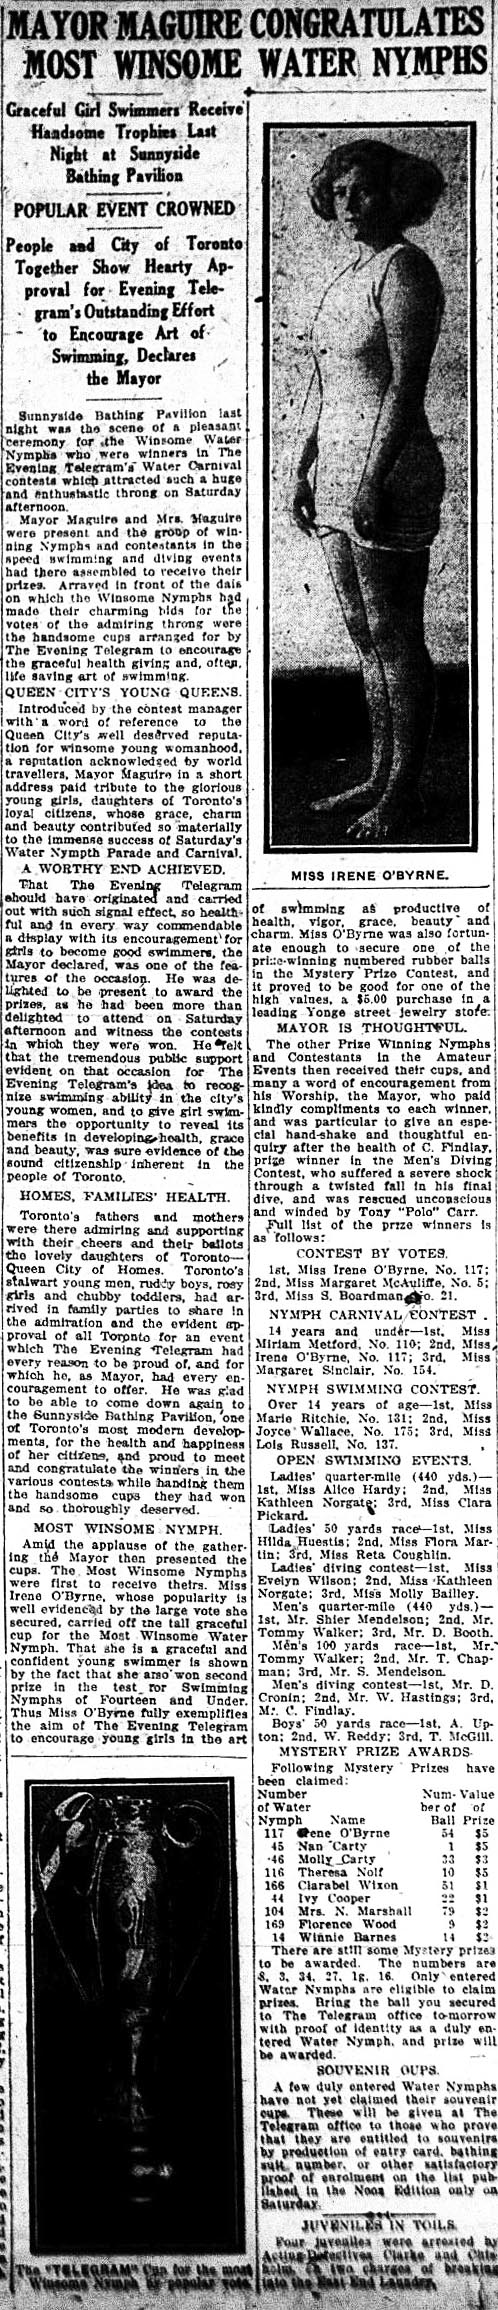 tely 1923-08-21 mayor congratulates water nymphs